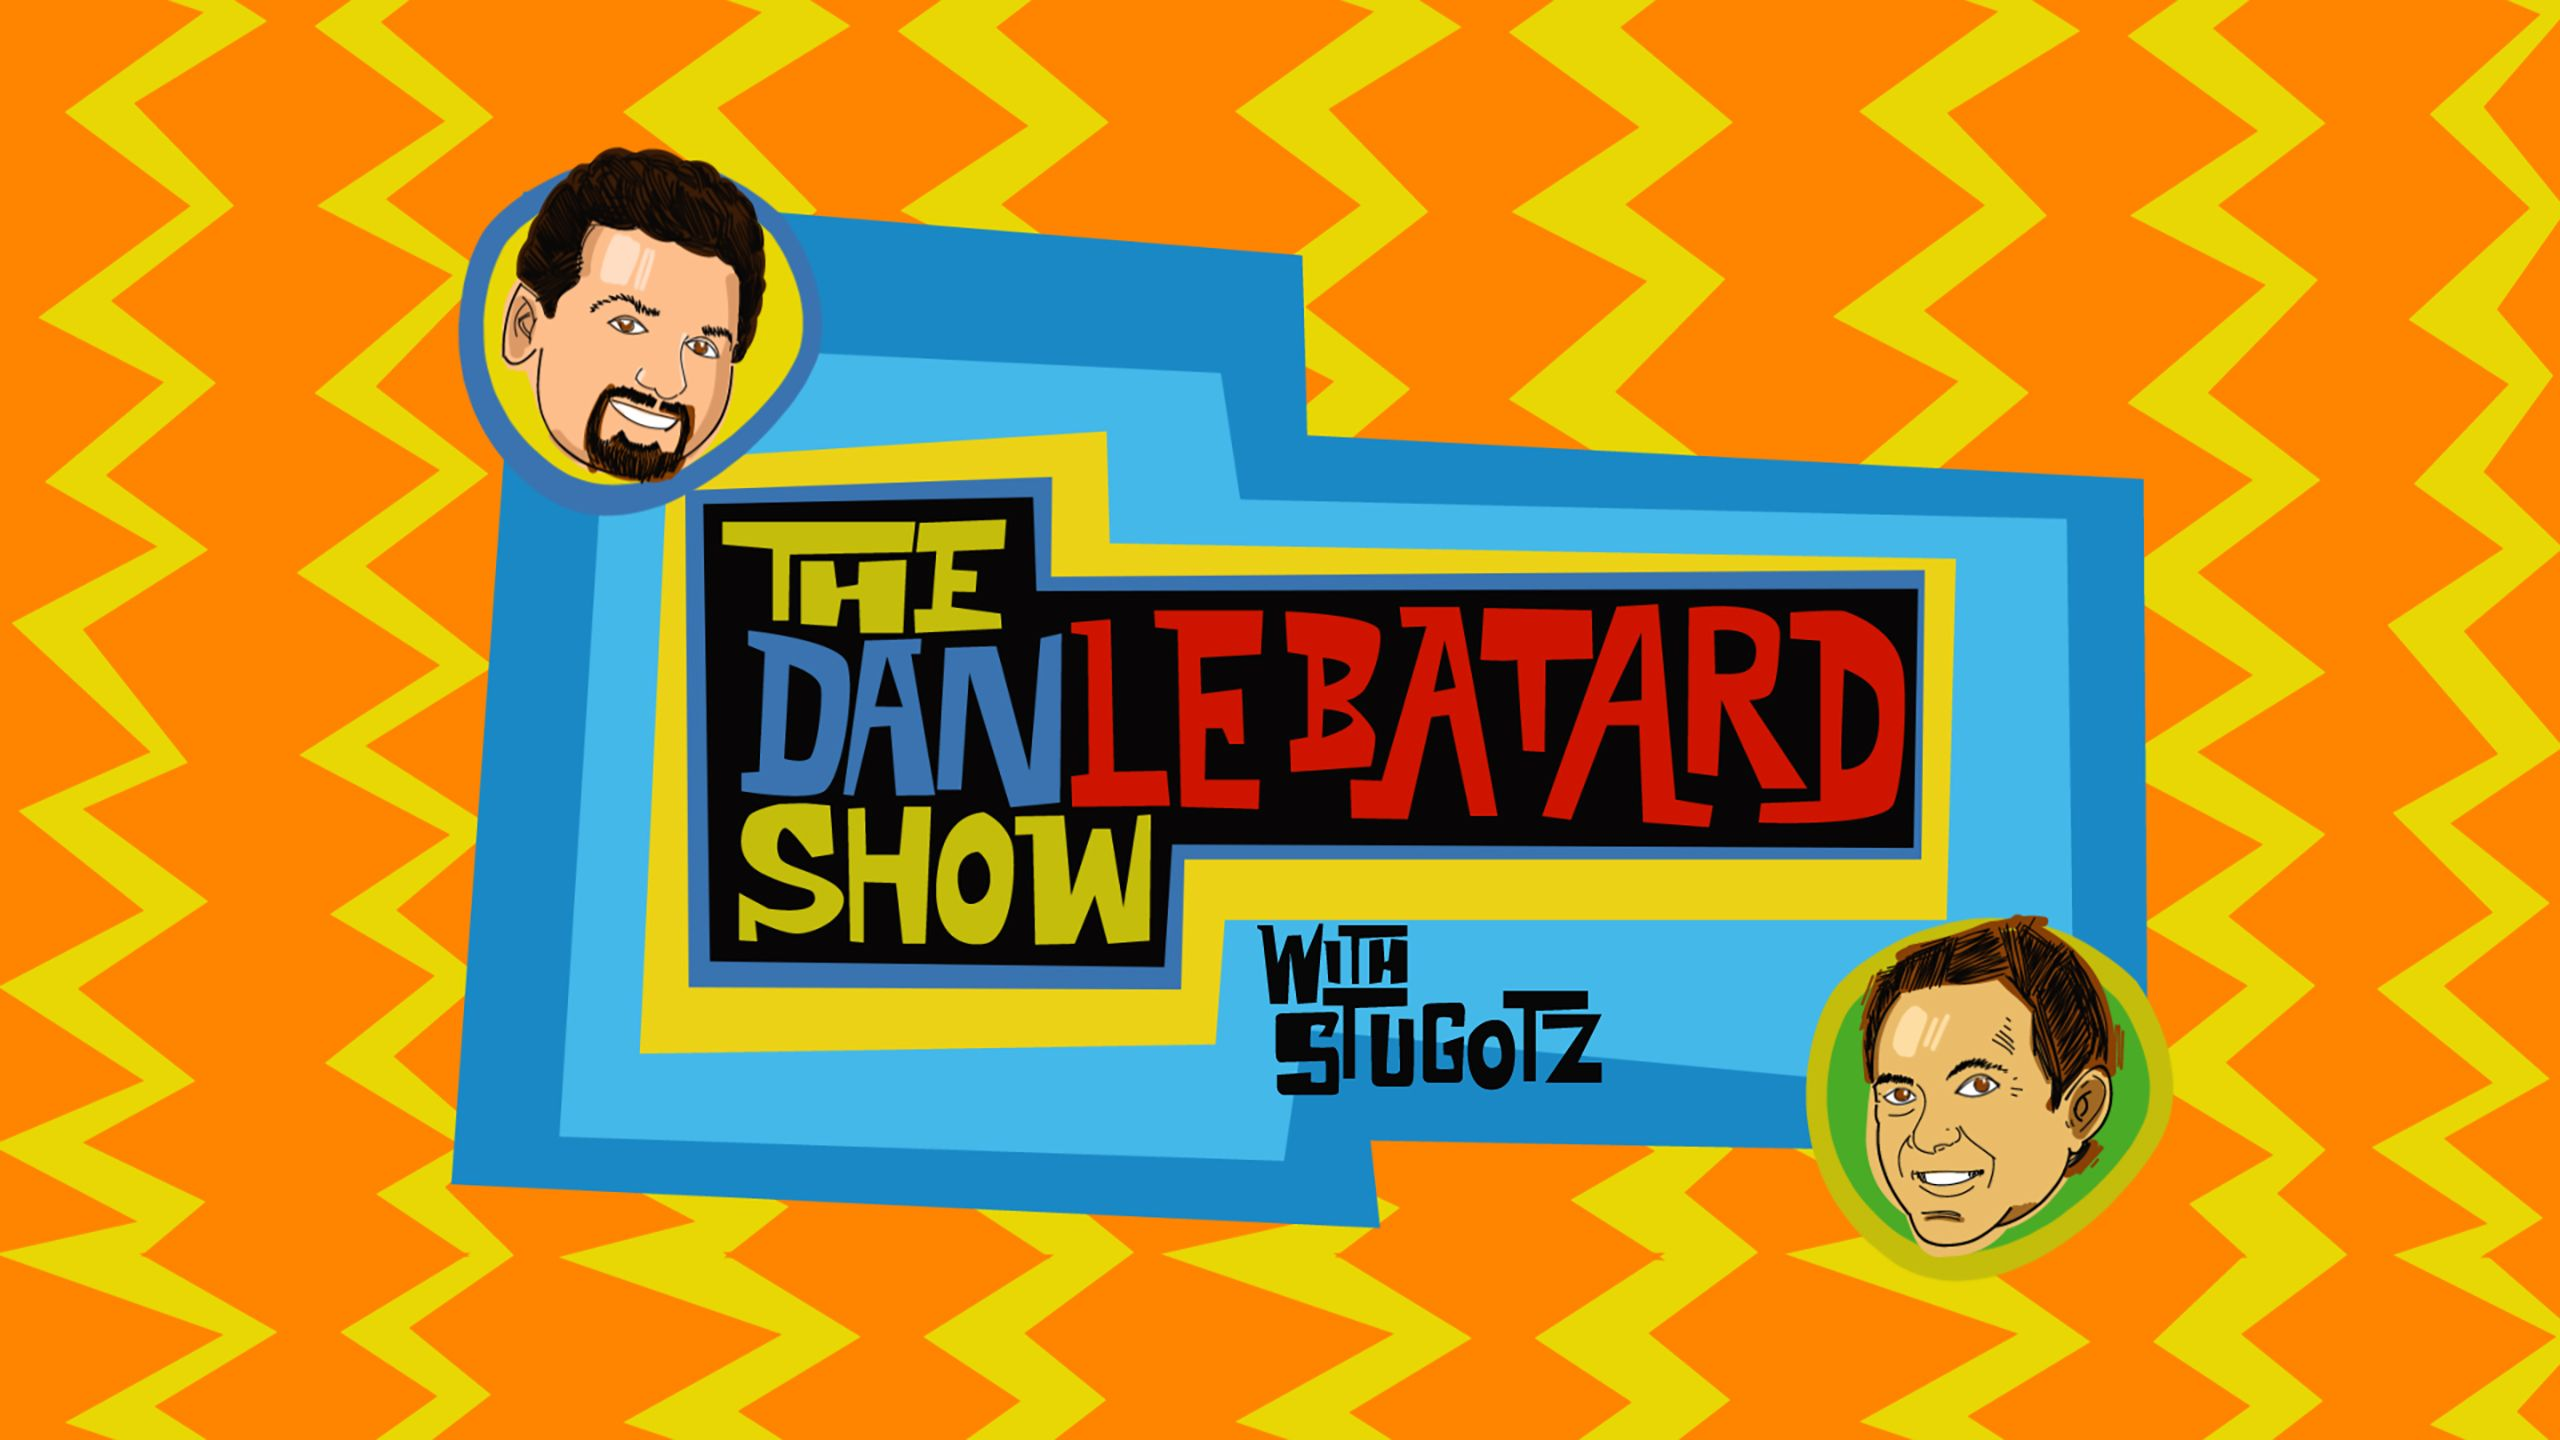 Thu, 3/22 - The Dan Le Batard Show with Stugotz Presented by Progressive